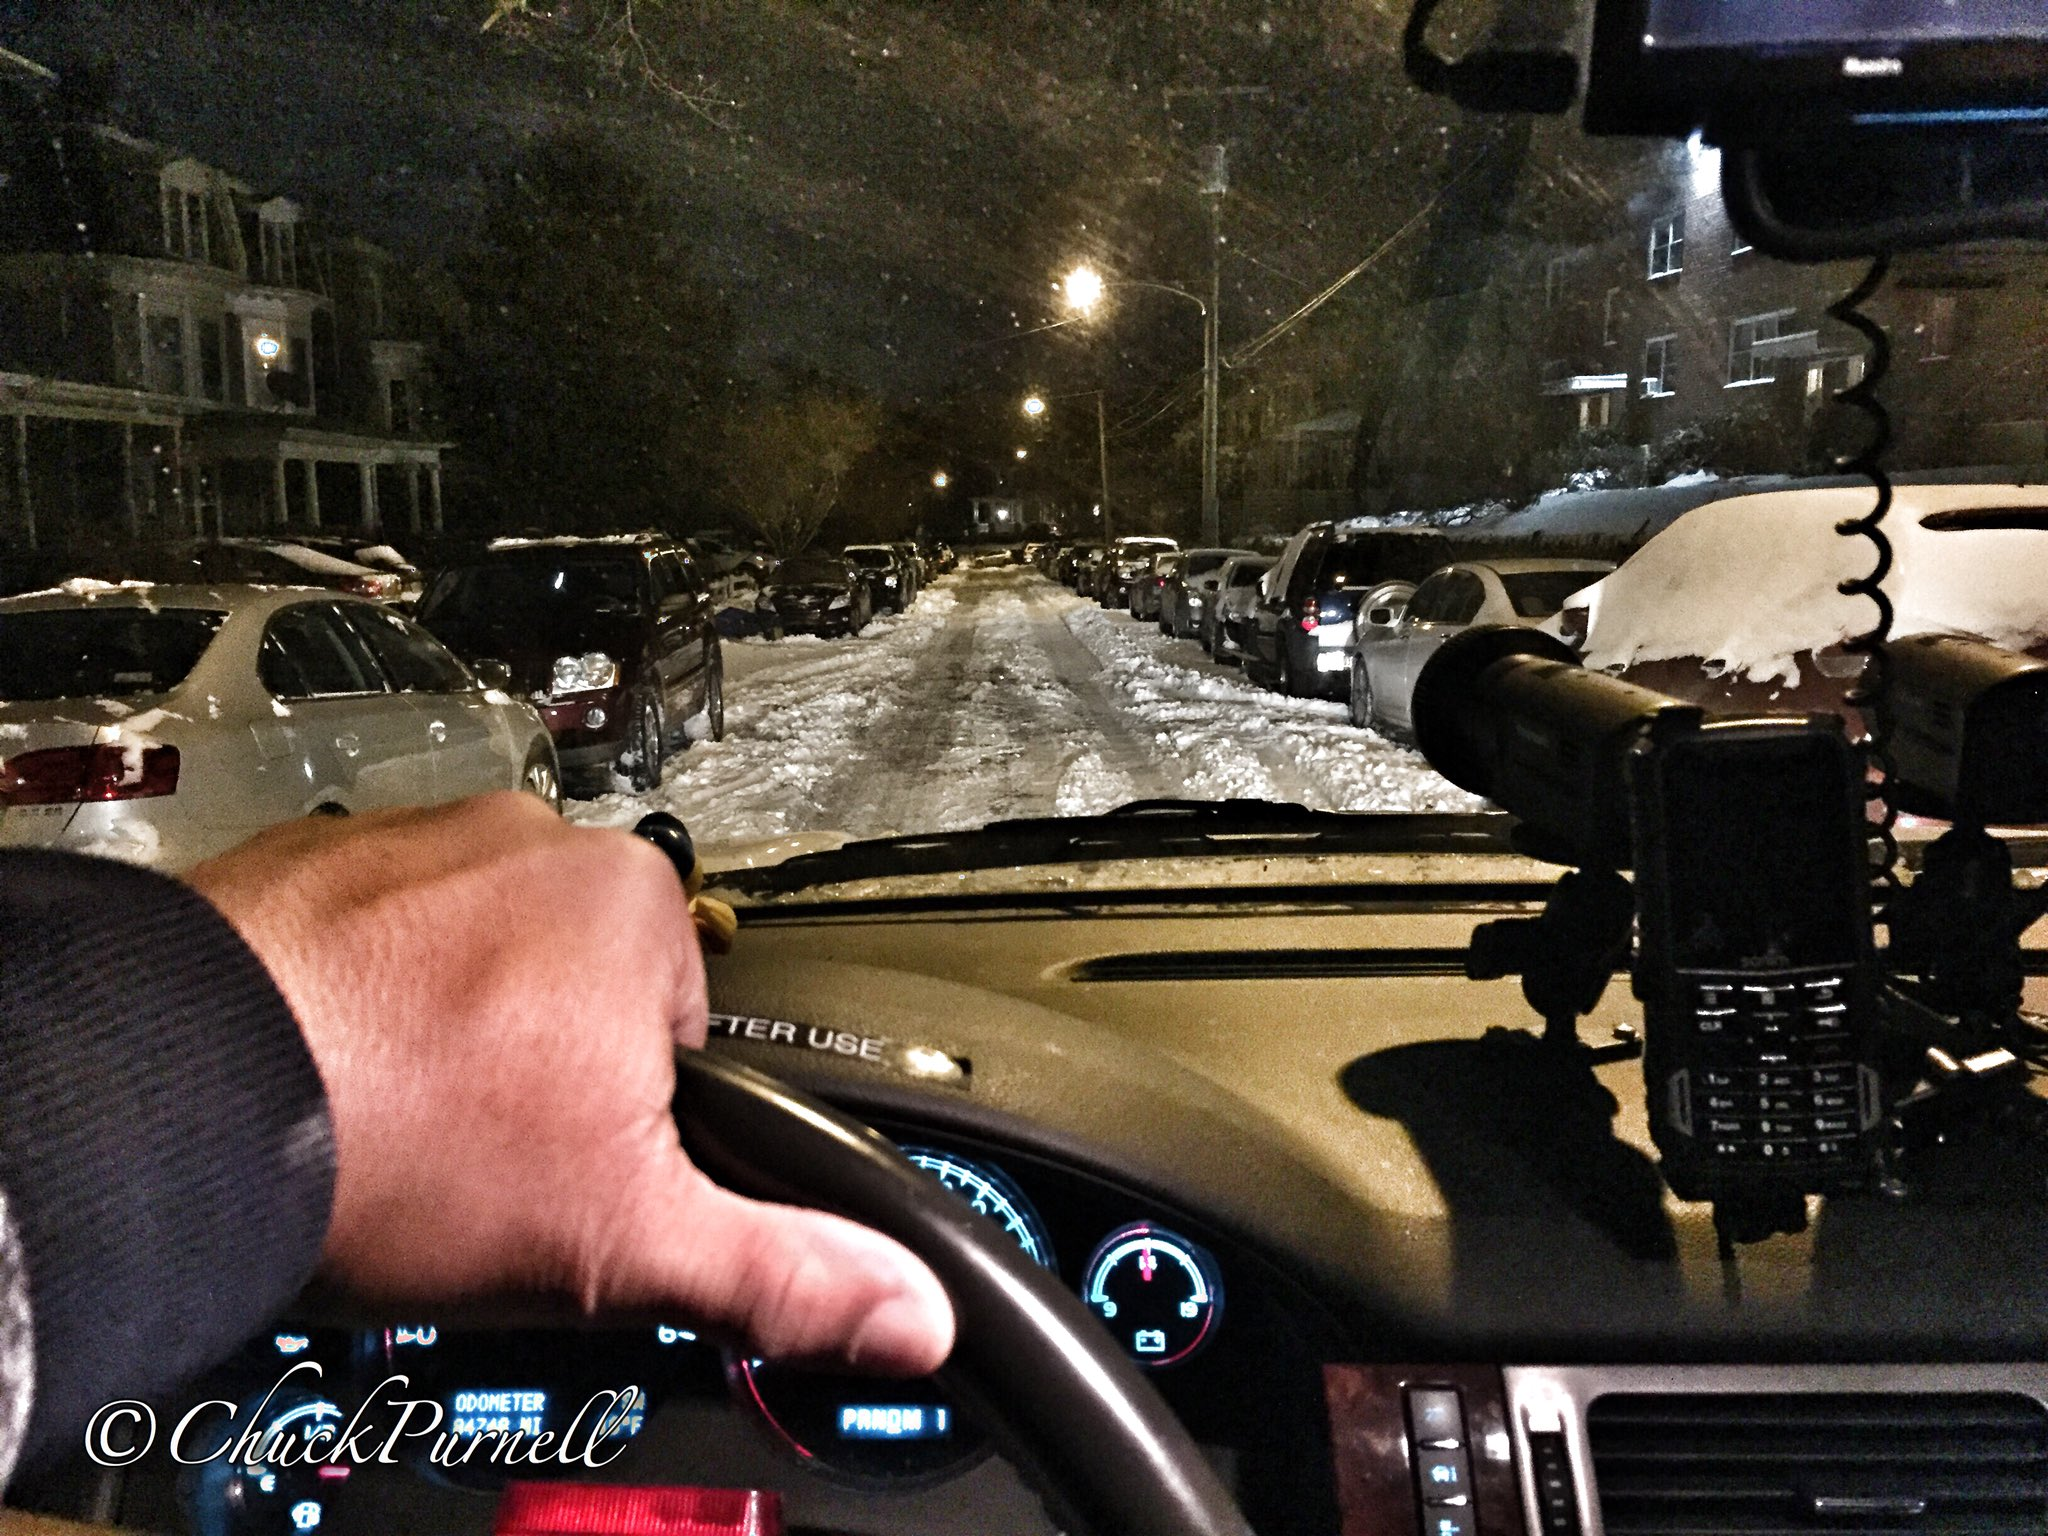 "<div class=""meta image-caption""><div class=""origin-logo origin-image none""><span>none</span></div><span class=""caption-text"">Action News photographer Chuck Purnell gave morning viewers a look at the Philadelphia streets that were and weren't plowed.</span></div>"